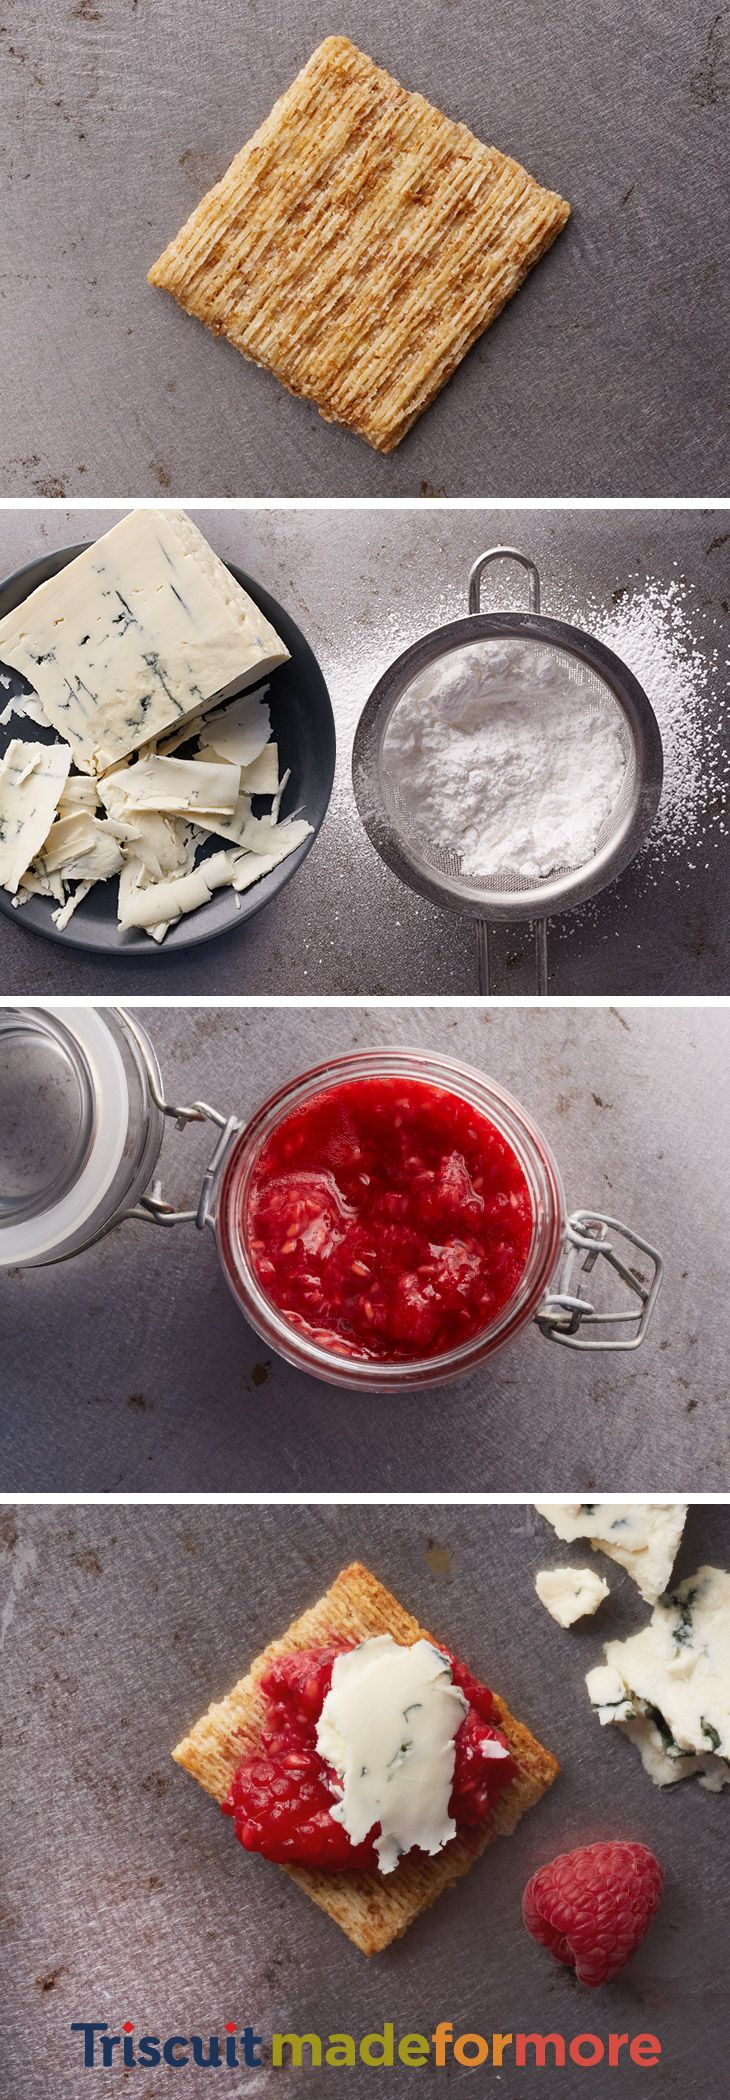 Raspberries, confectioners sugar and a wedge of rich, tangy Roquefort cheese…